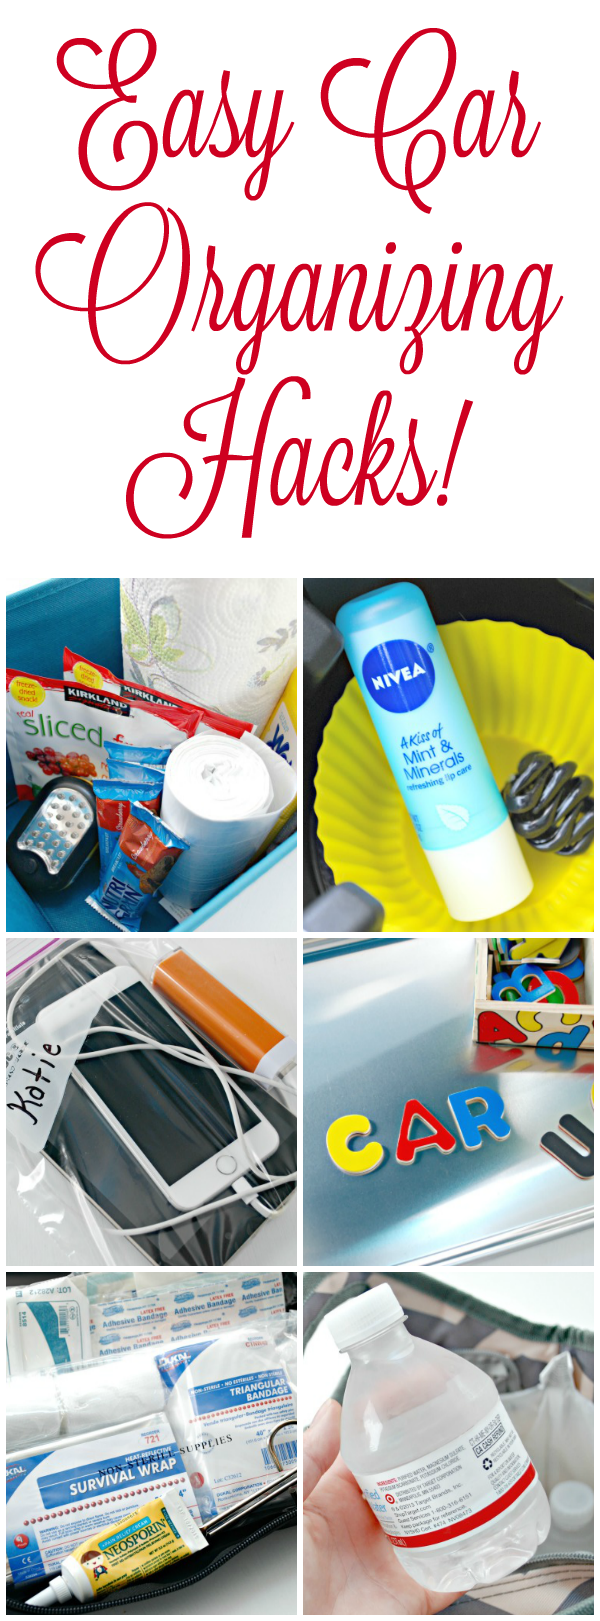 Easy Car Organizing Hacks to help your family stay organized, entertained, hydrated and sane while traveling and running around!